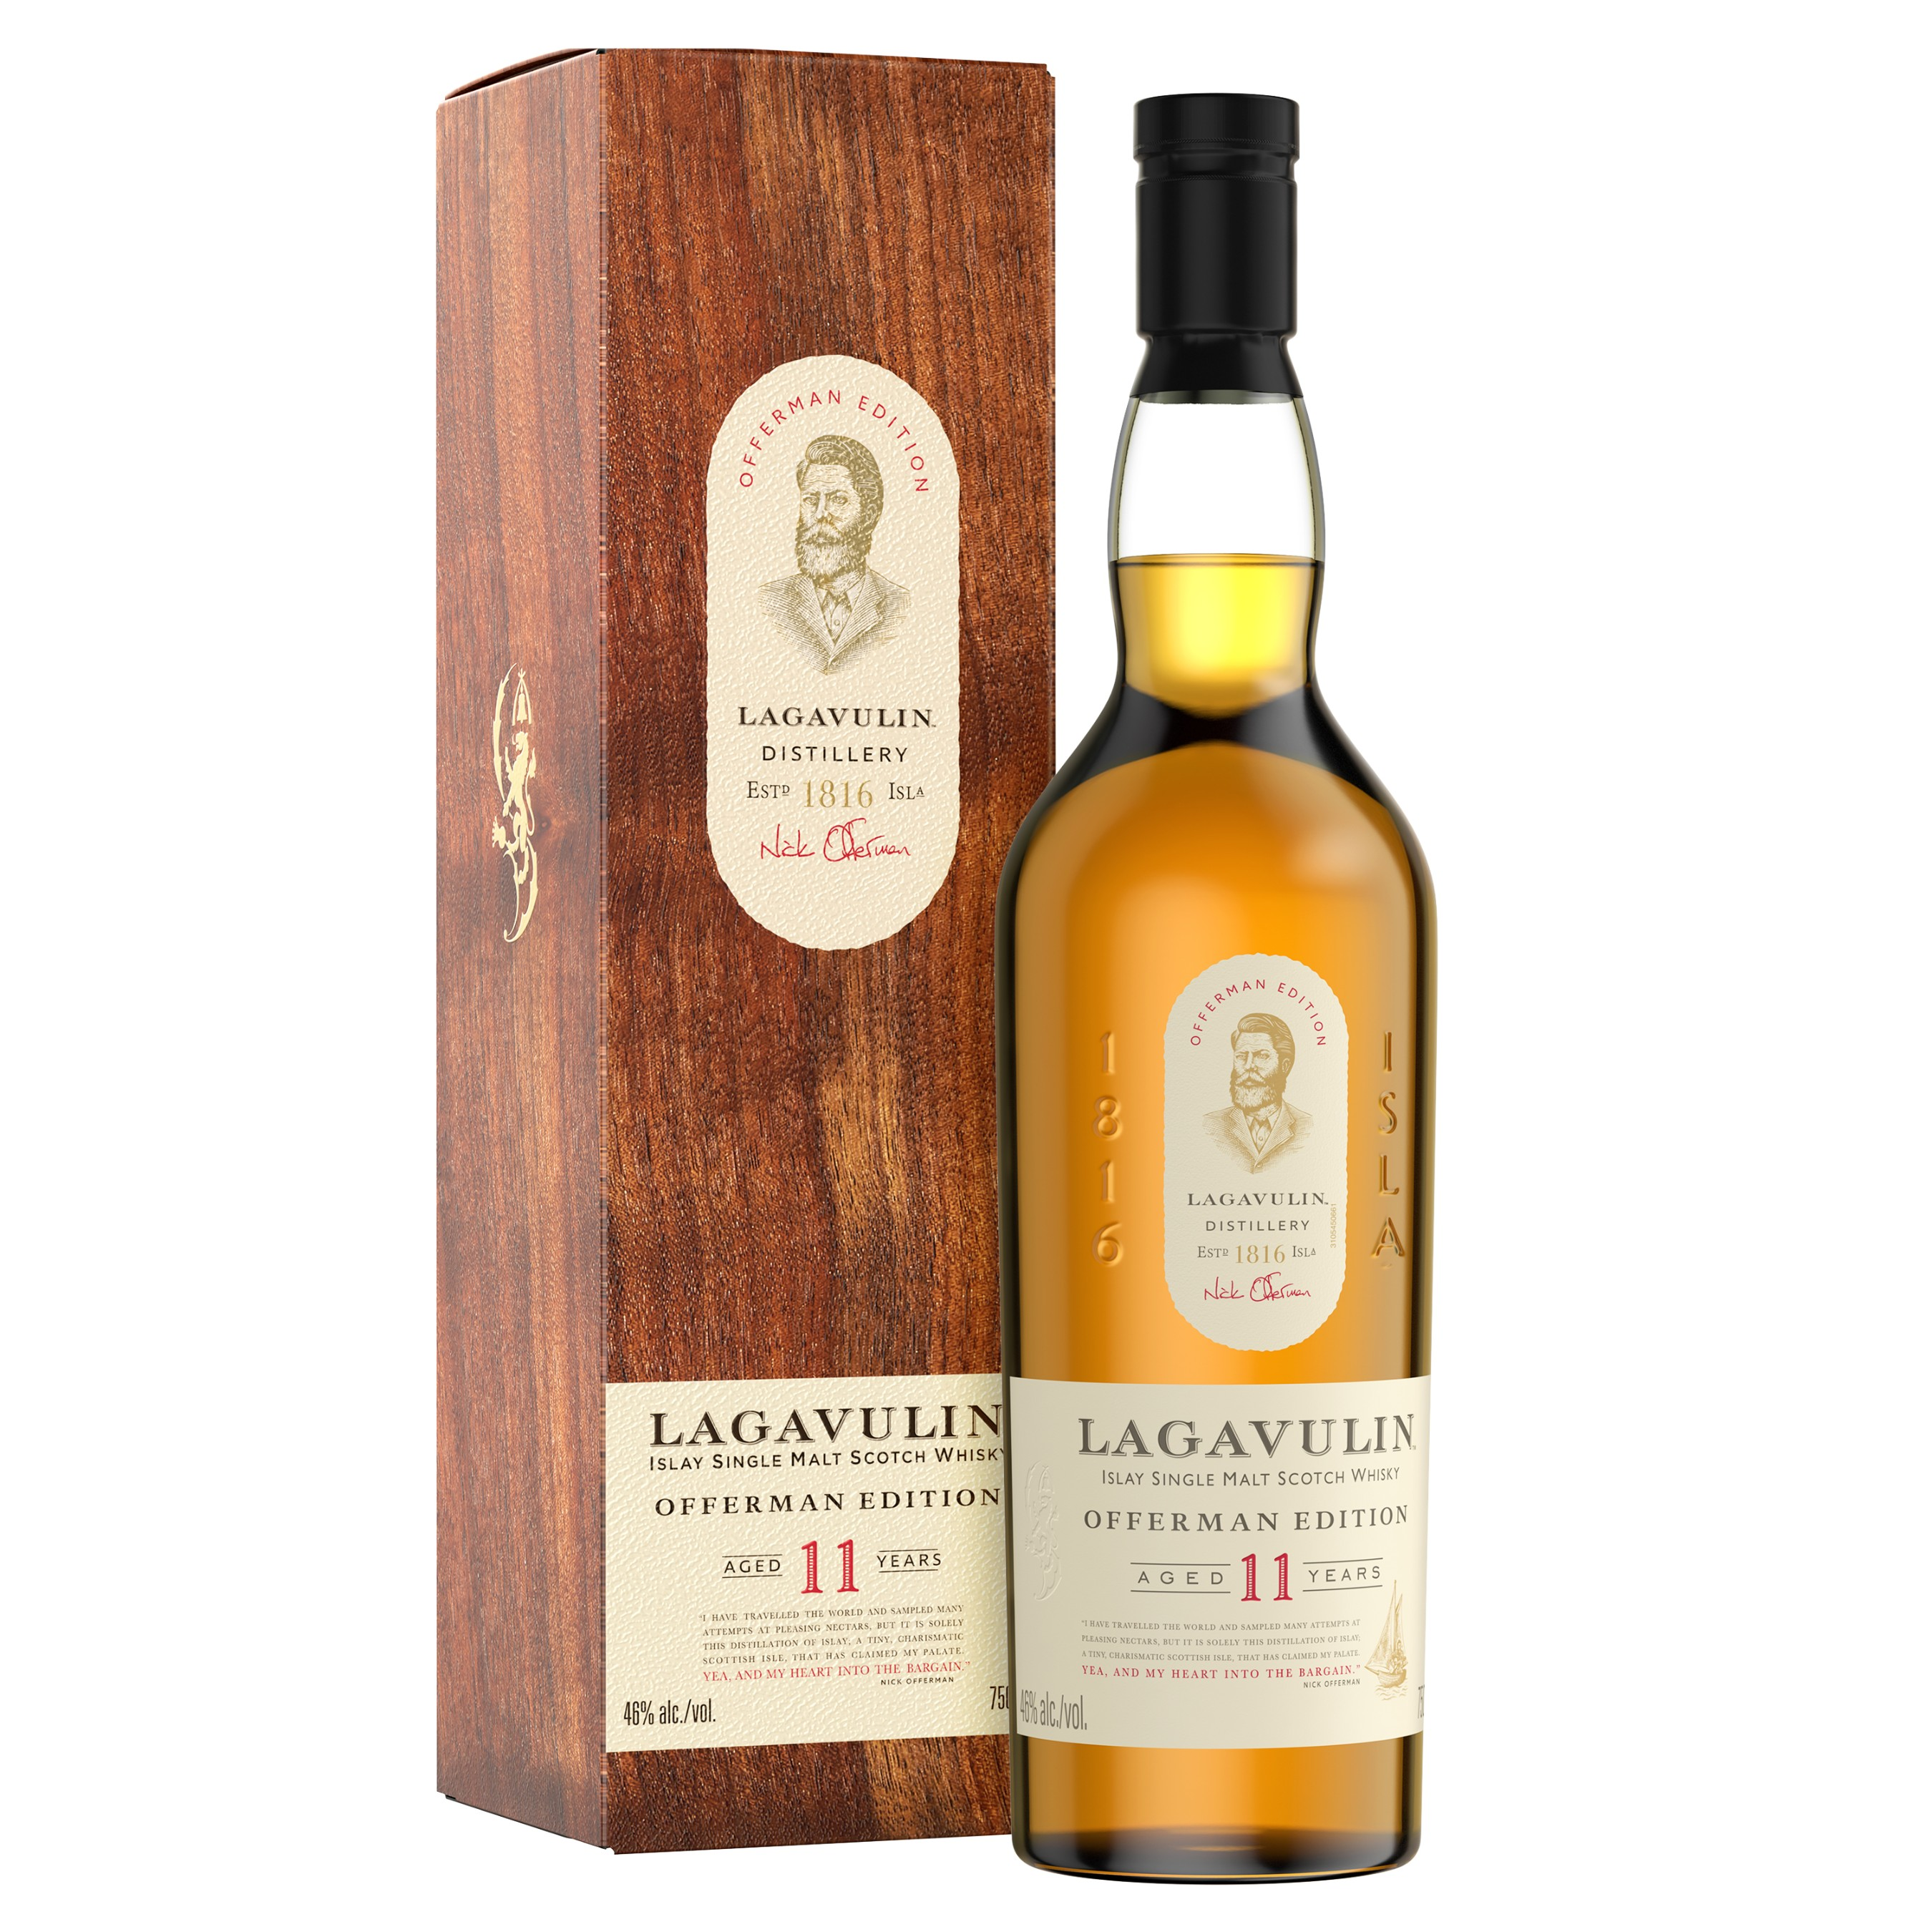 Lagavulin Offerman Edition Aged 11 Years is a limited edition Single Malt that carries the signature Lagavulin peatiness but with extra spice and notes of dried fruit to carry the smoke.